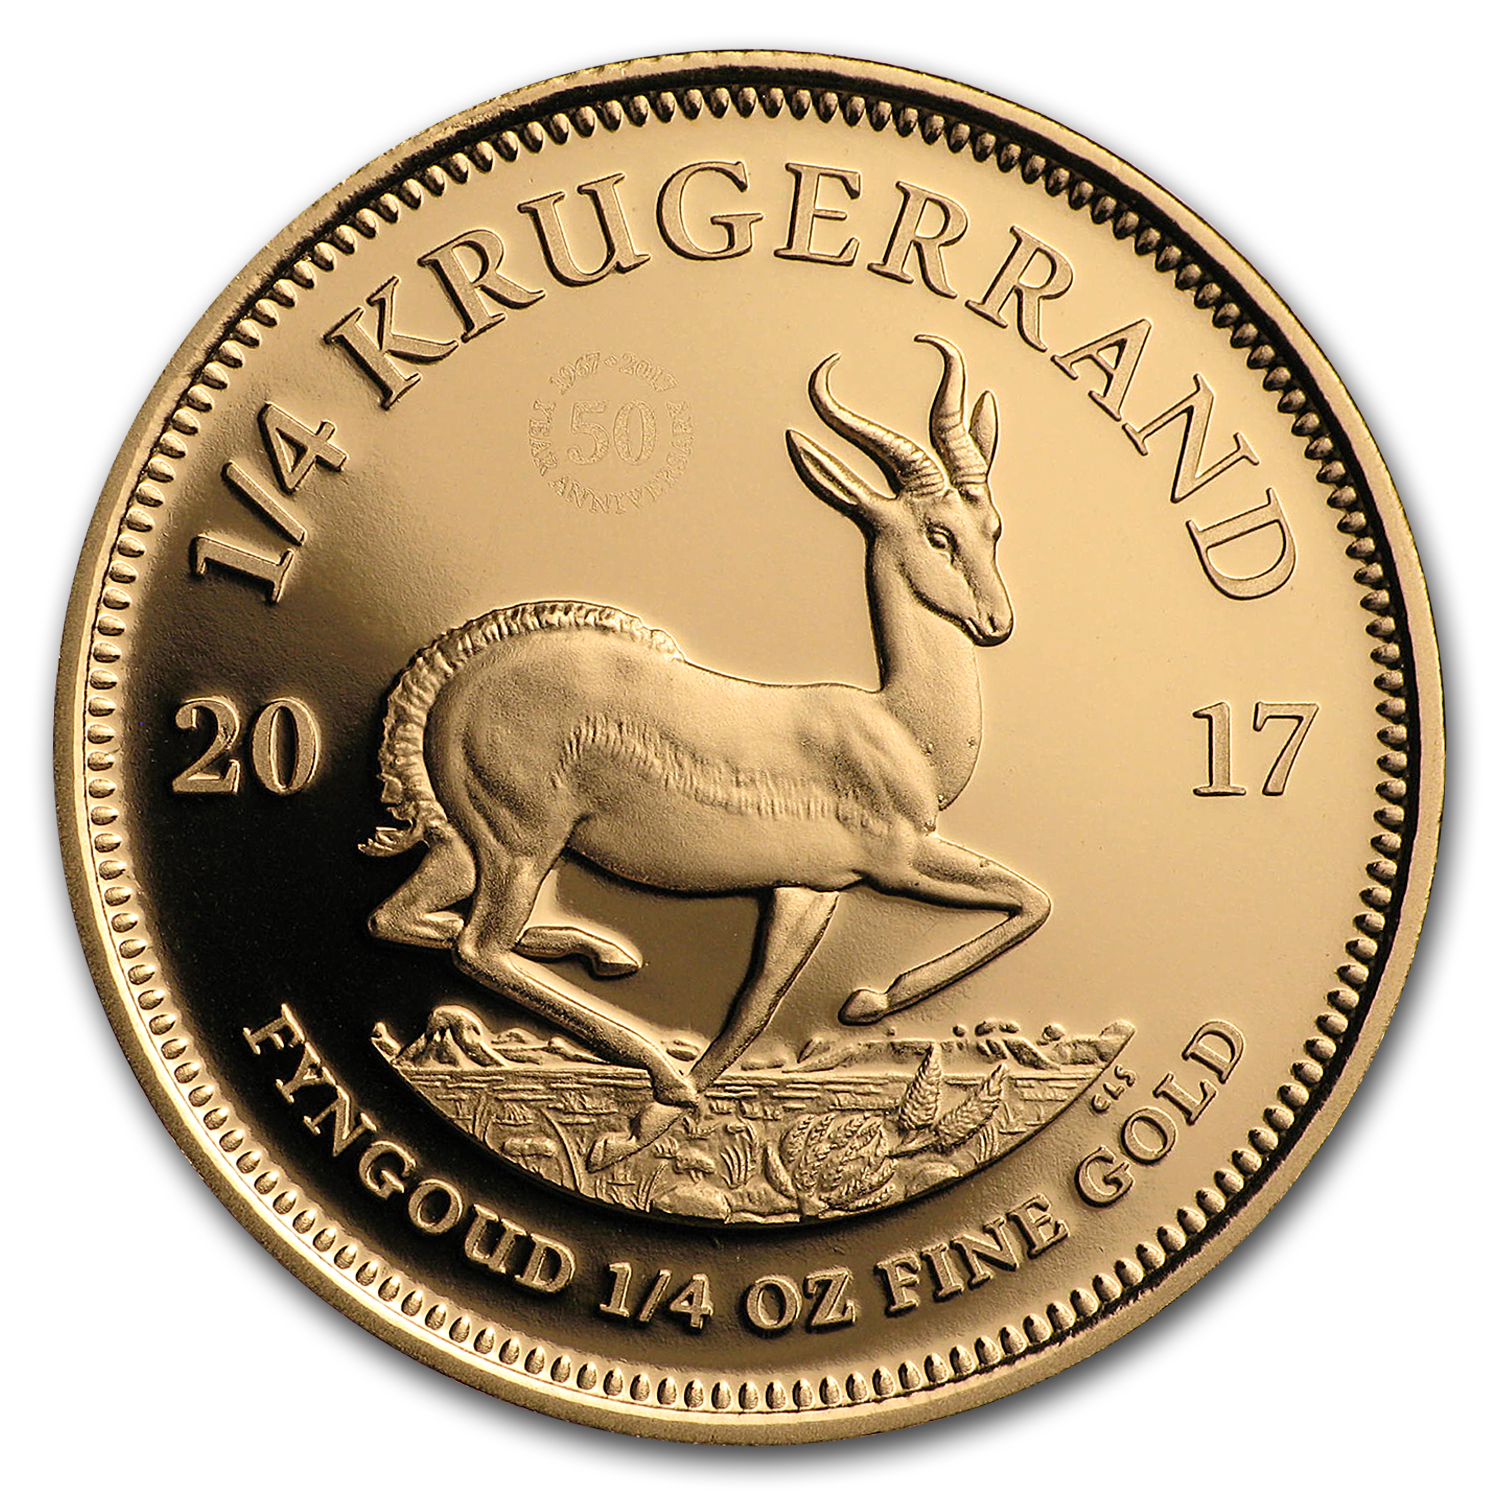 2017 South Africa 1/4 oz Proof Gold Krugerrand